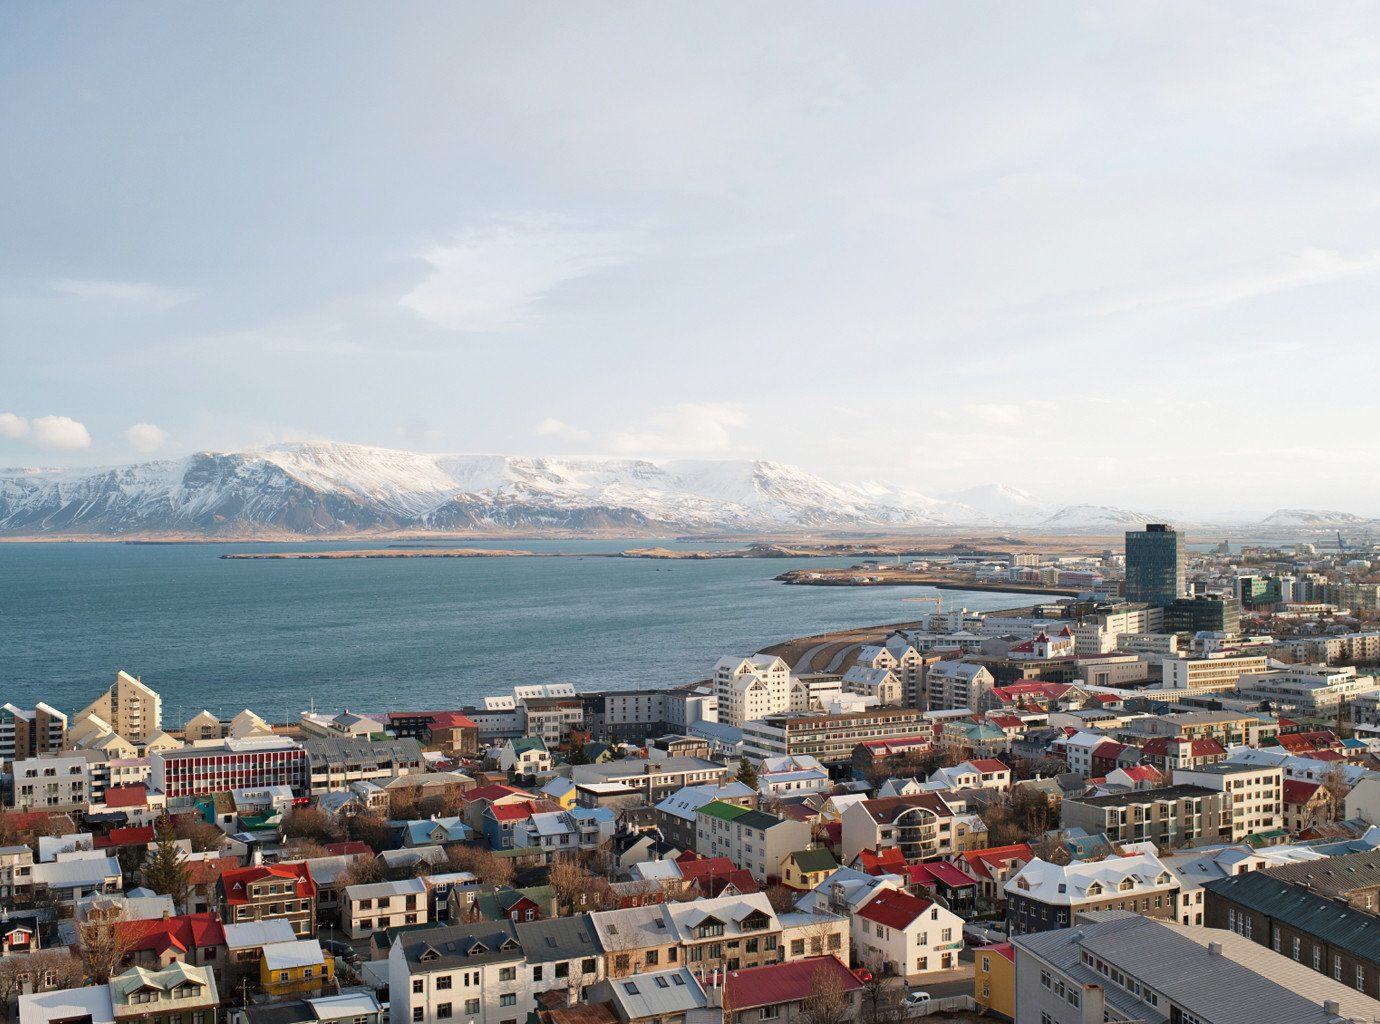 Architecture Buildings City Drink Eat Entertainment Hotels Iceland Landmarks Monuments Mountains Museums Nightlife Scenic views Shop Trip Ideas sky outdoor Town geographical feature Sea Coast scene mountain Harbor cityscape human settlement horizon bay port panorama aerial photography skyline